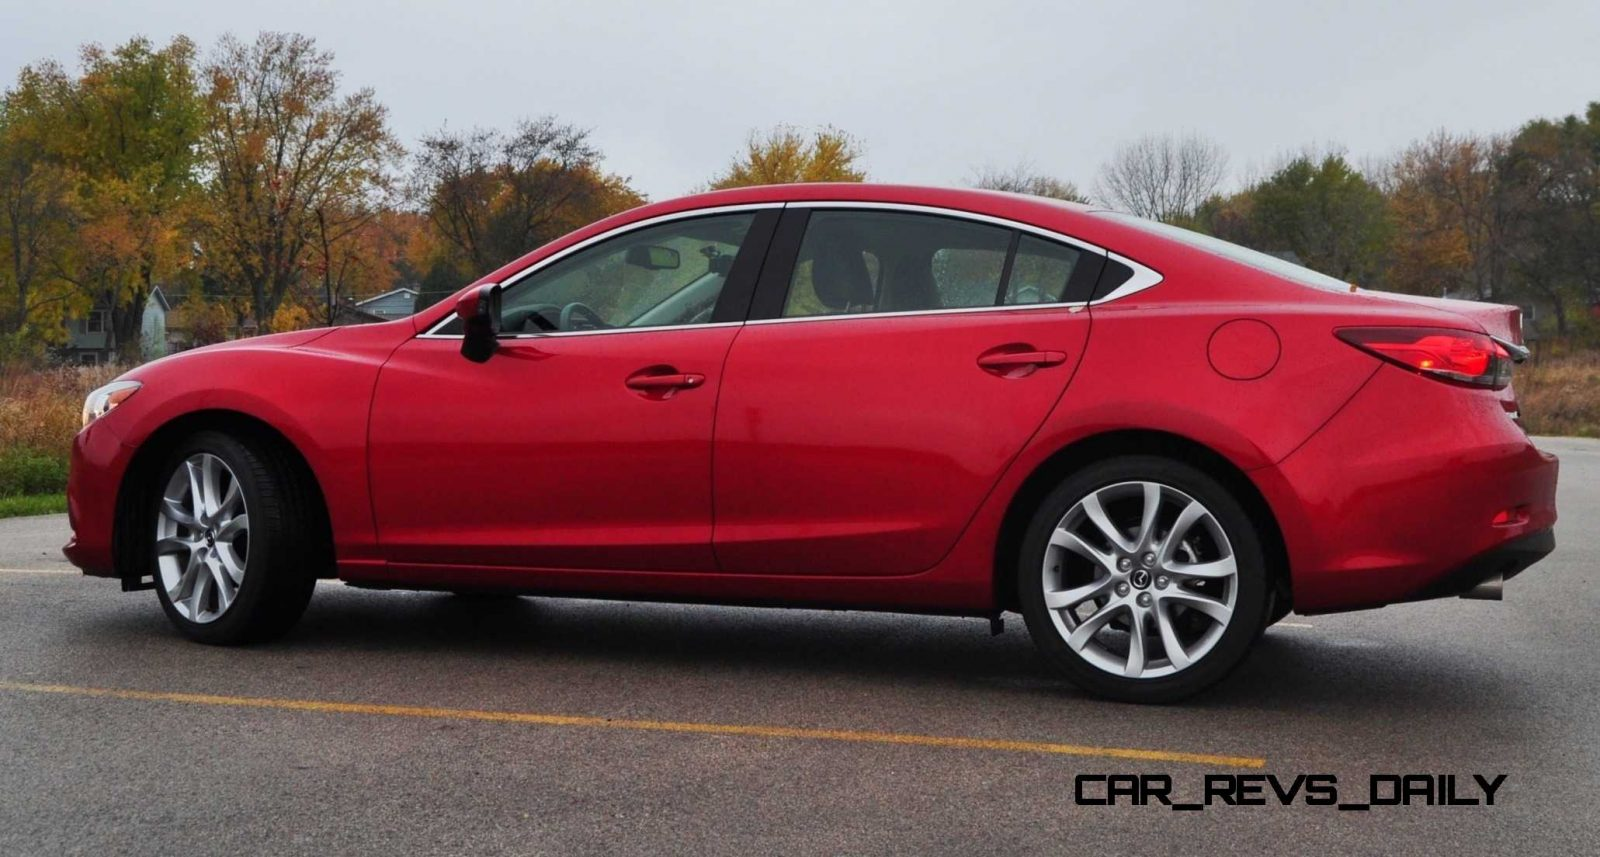 2014 Mazda6 i Touring - Video Summary + 40 High-Res Images8